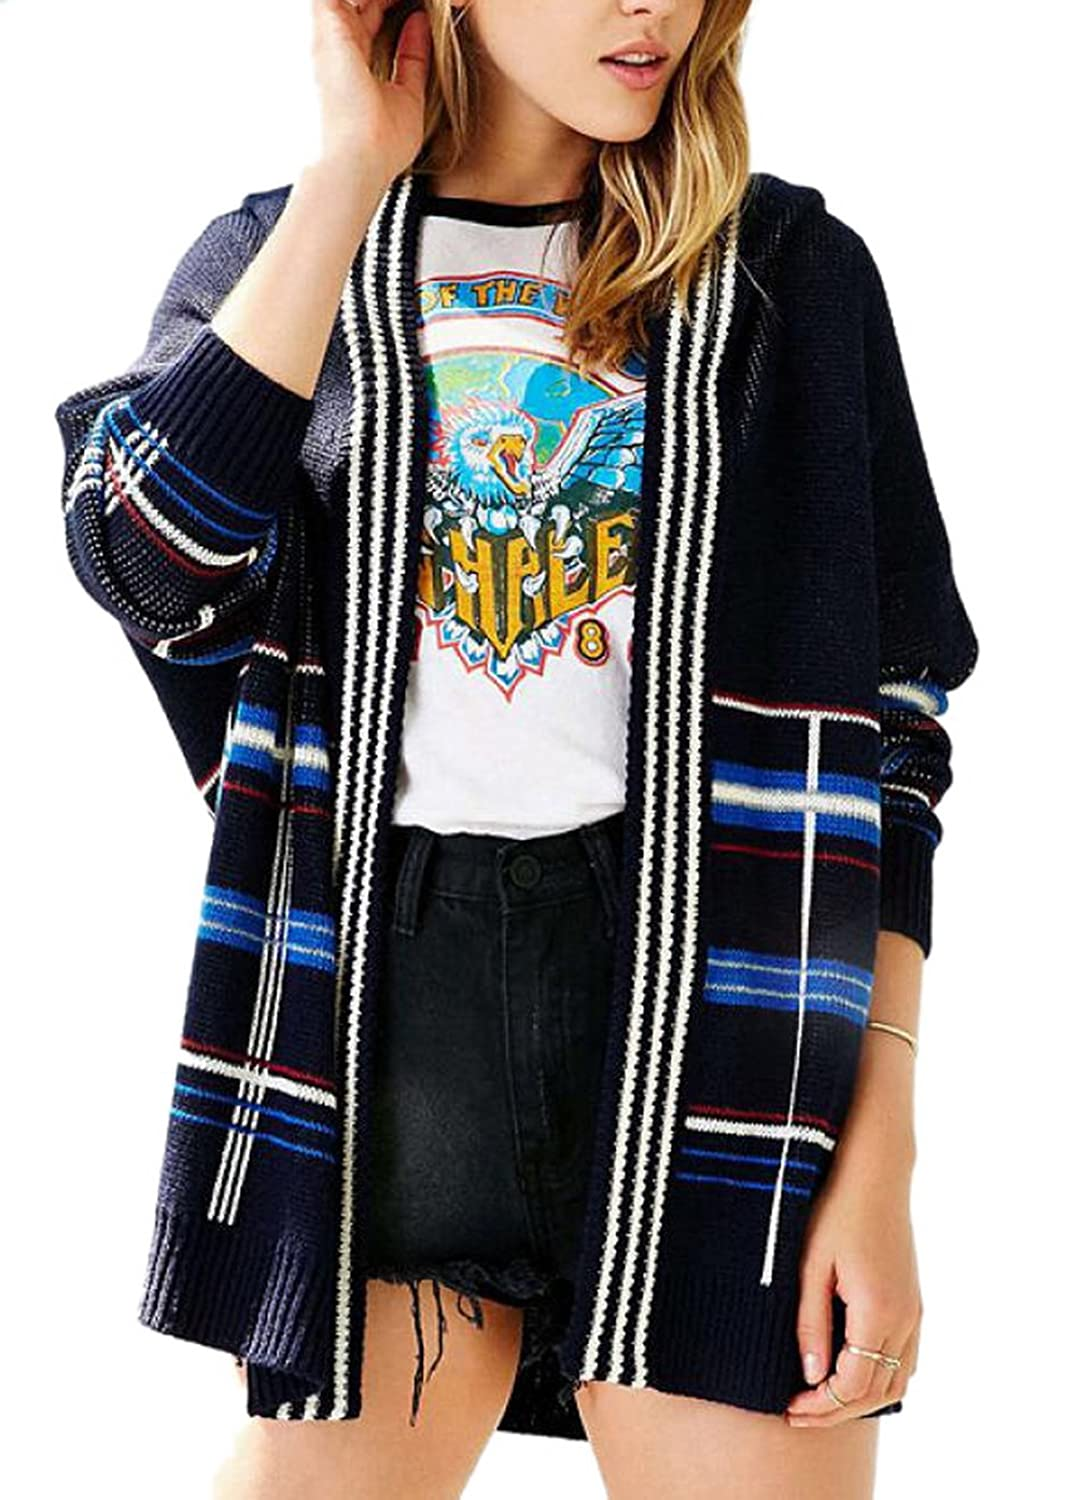 Enlishop Women's Fashion Loose Blue Plaid Striped Hooded Sweater Knit Cardigan